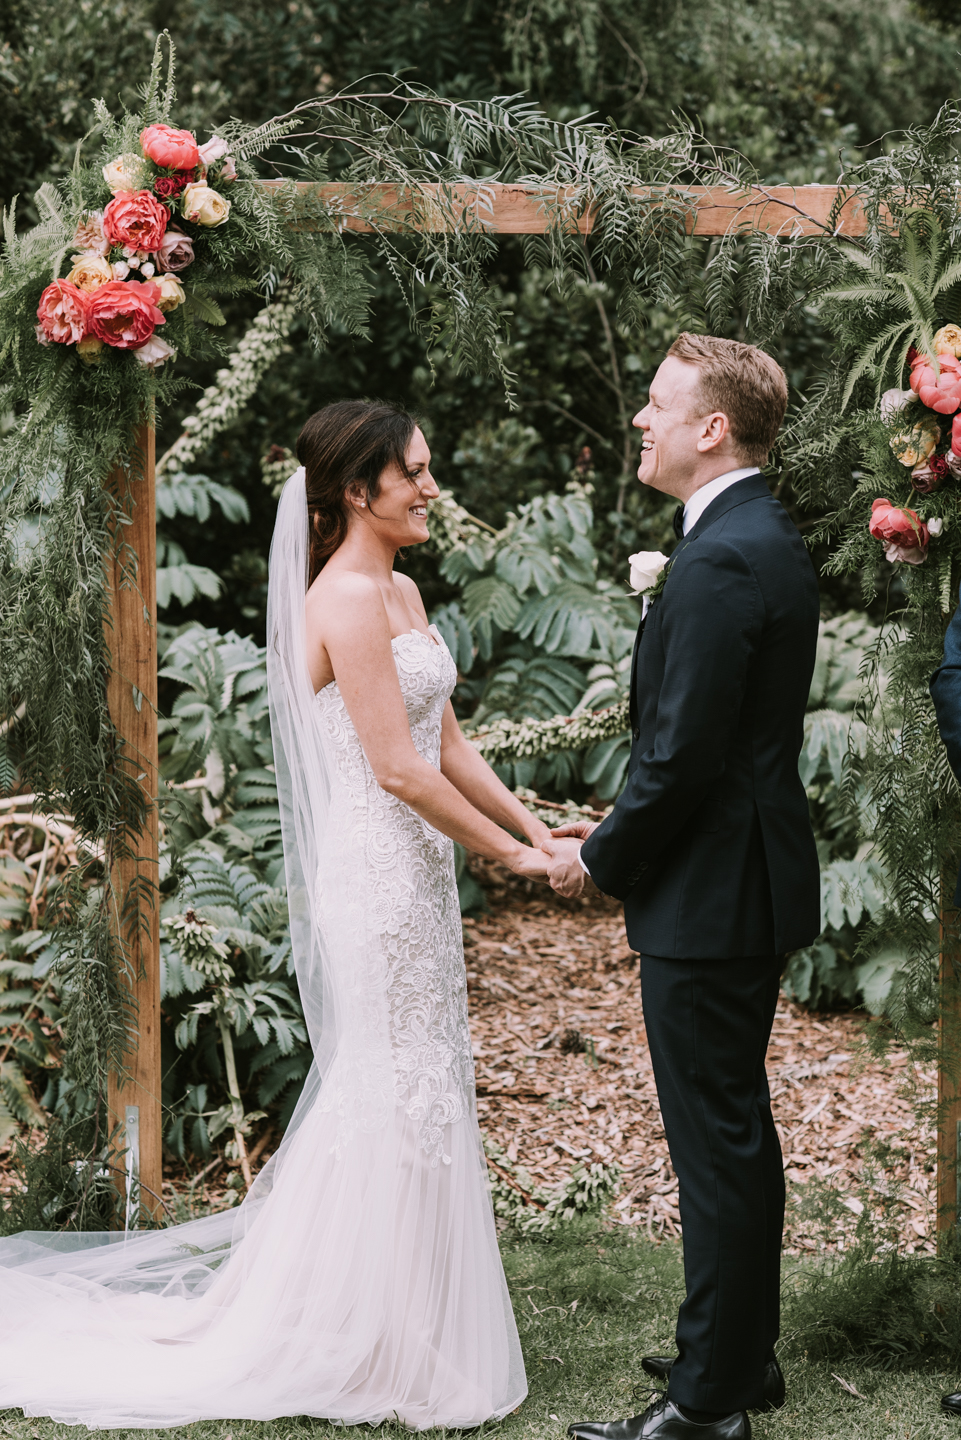 Ingrid and Matt - 18th november,2016photography by cam grove